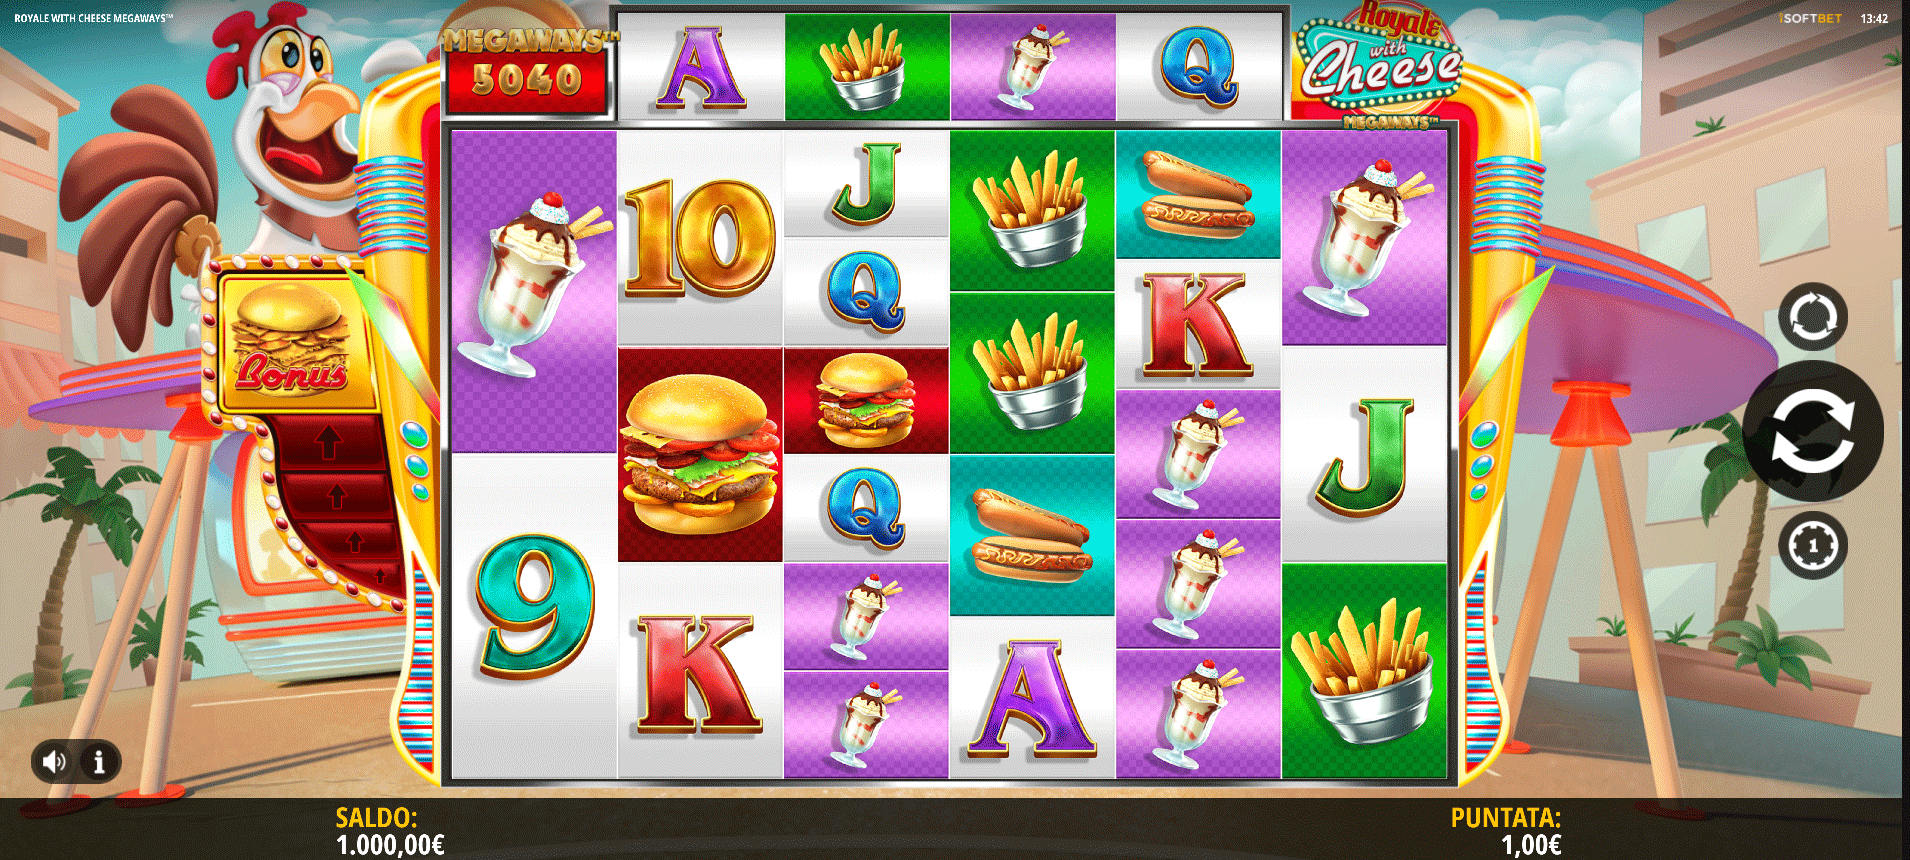 Slot Royale With Cheese Megaways